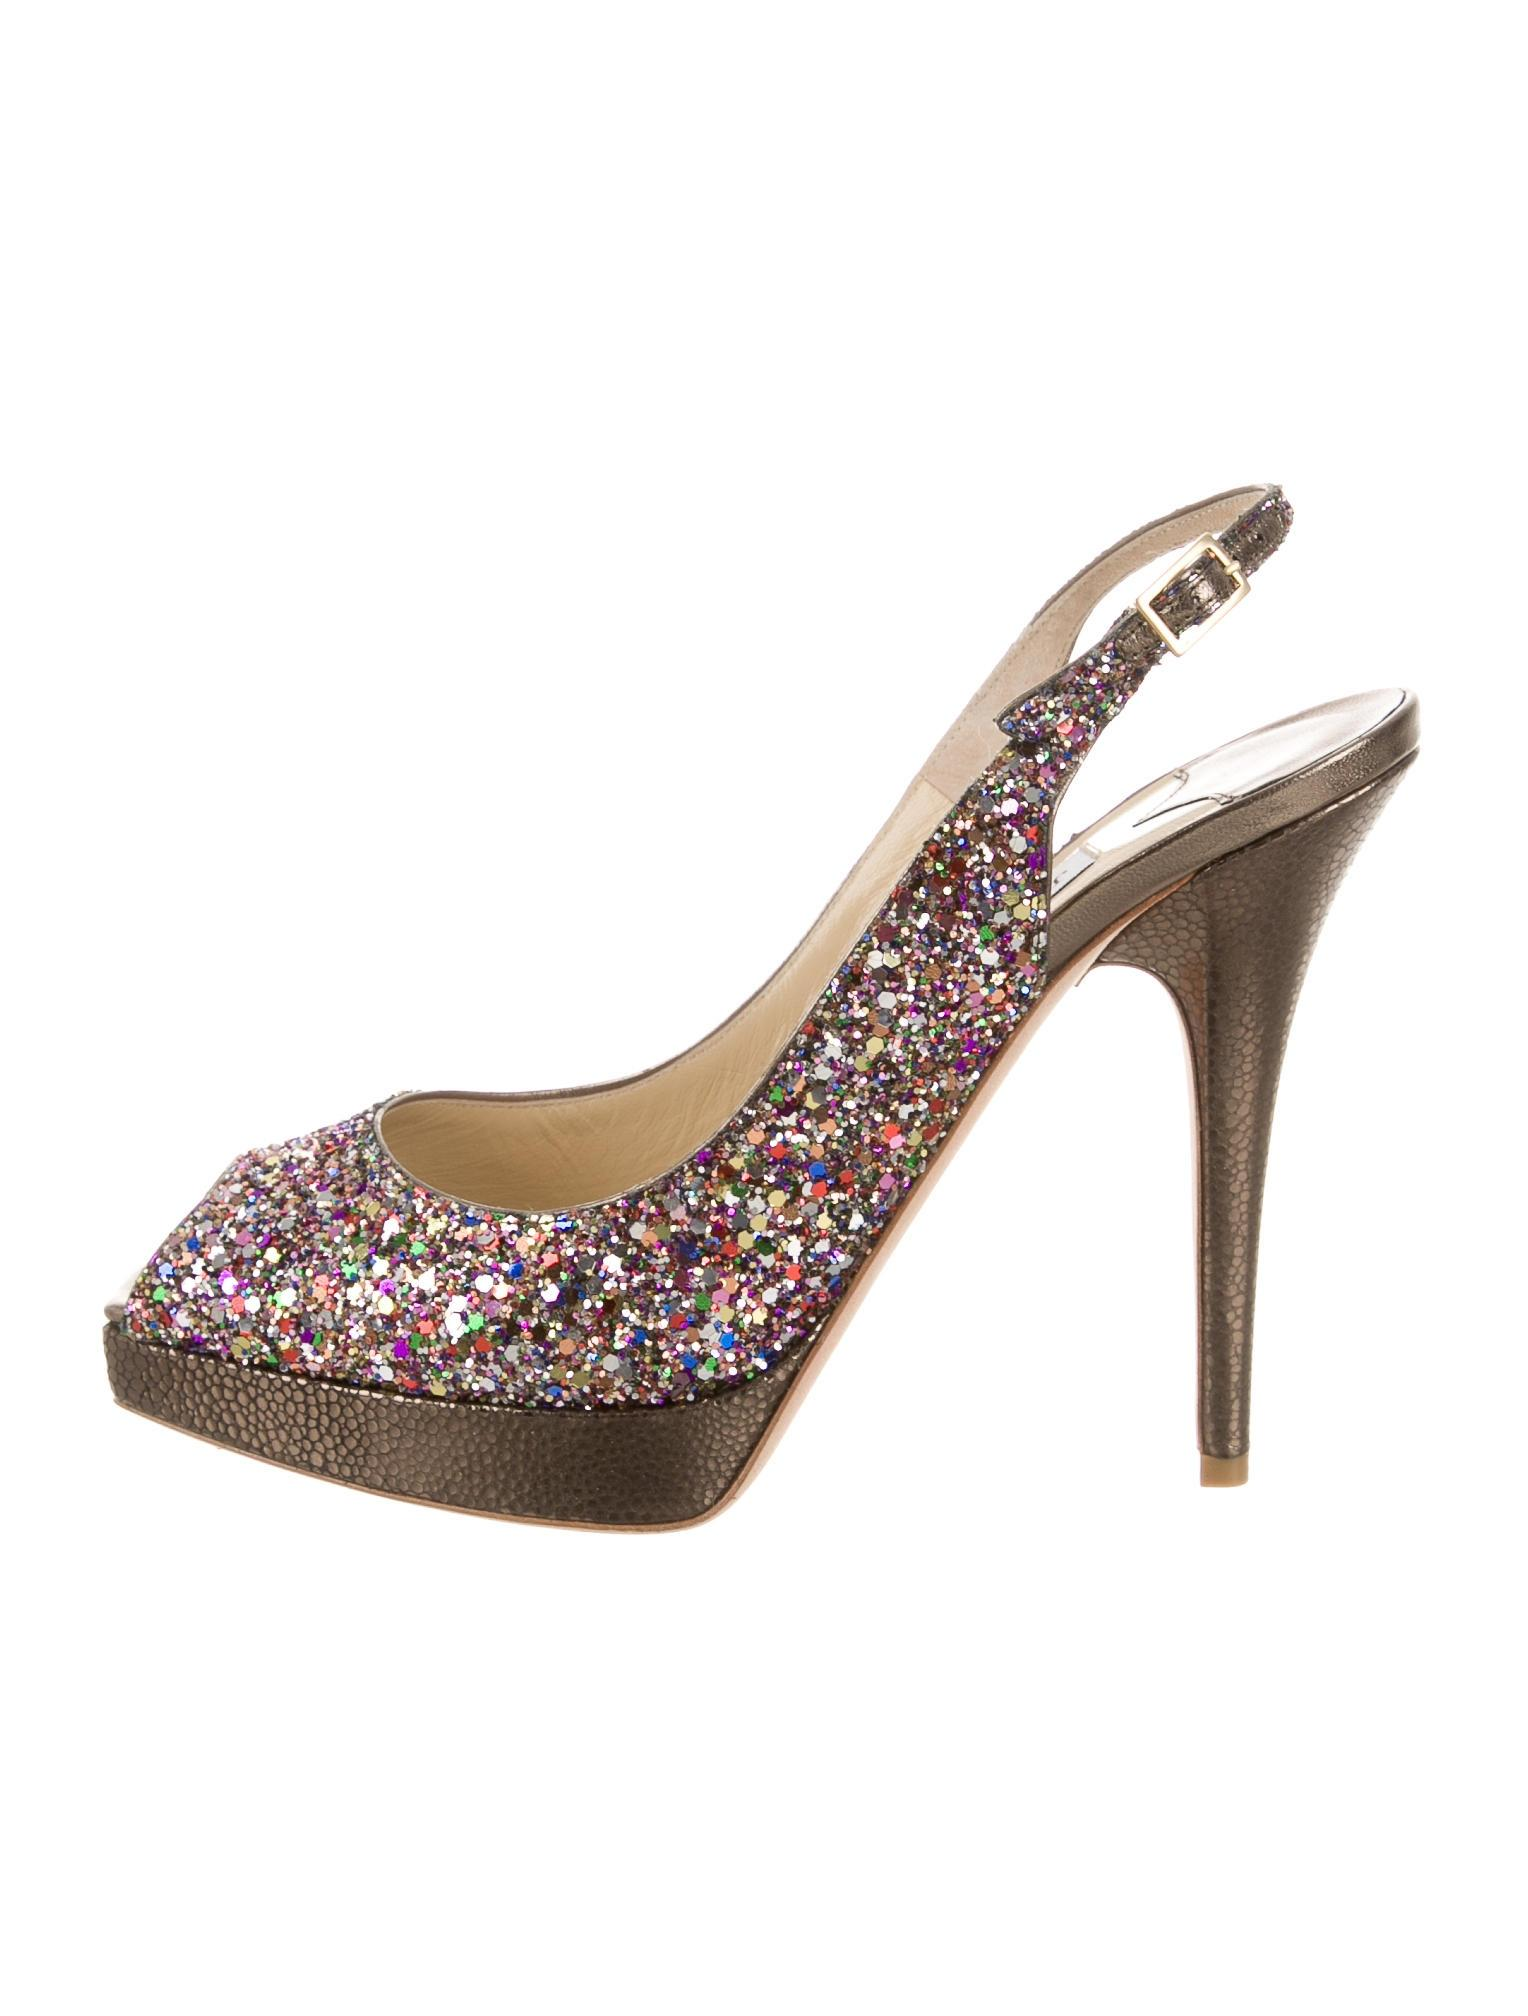 Jimmy Choo Clue Glitter Multicolor Pumps